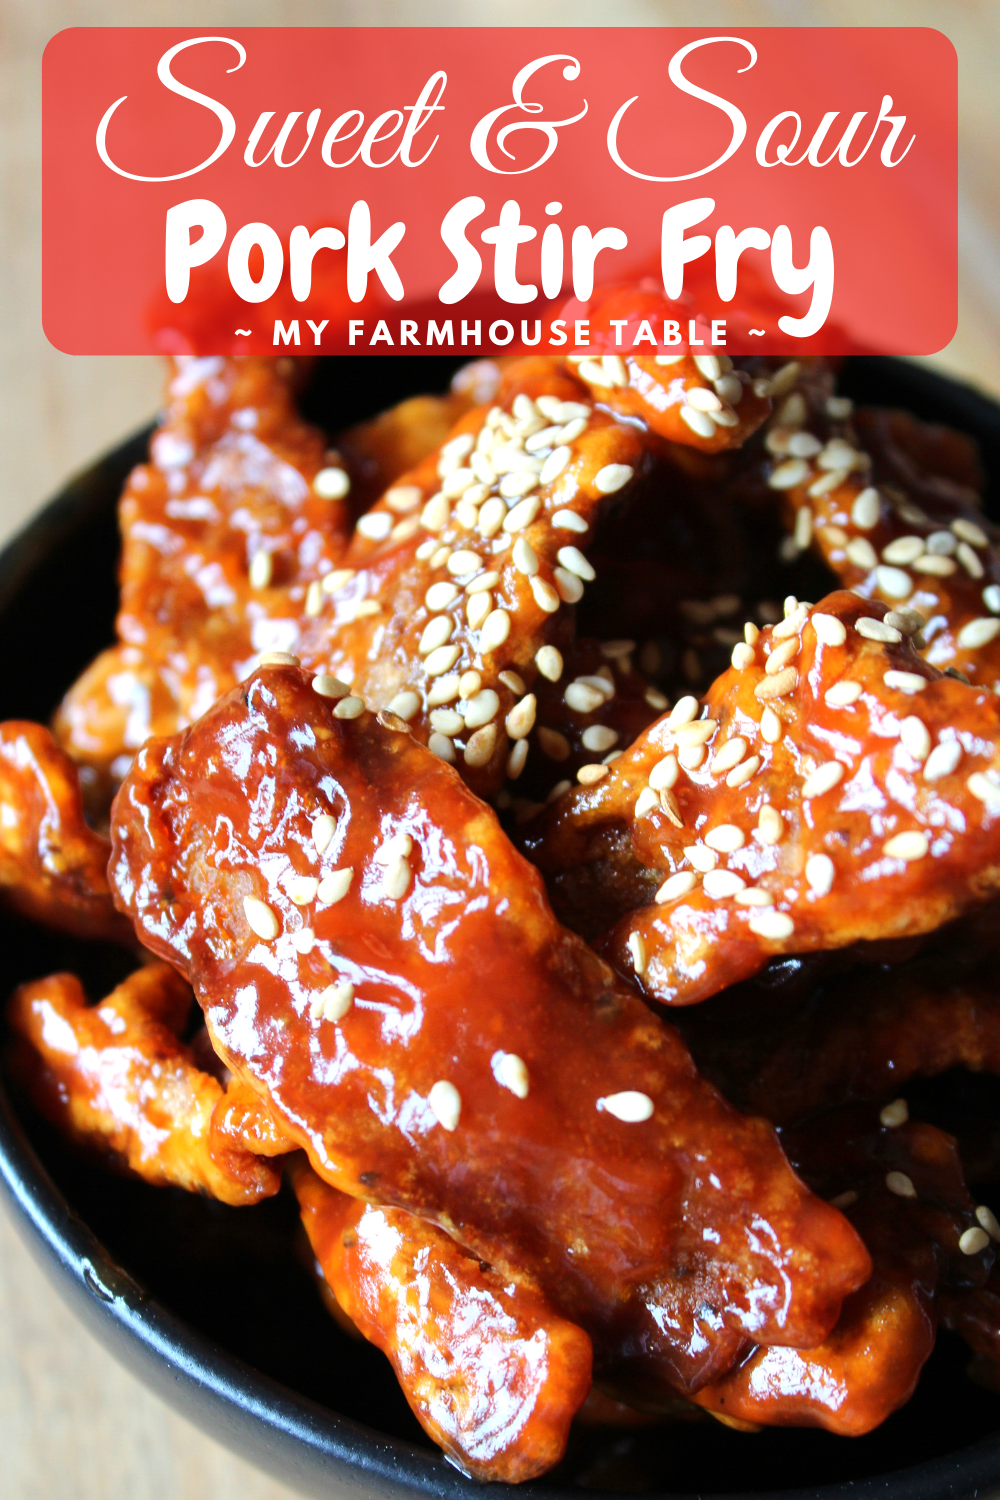 Sweet and Sour Pork Stir Fry Simple and Easy Chinese Food Recipes Crispy Pork Takeout Fake out Ideas My Farmhouse Table